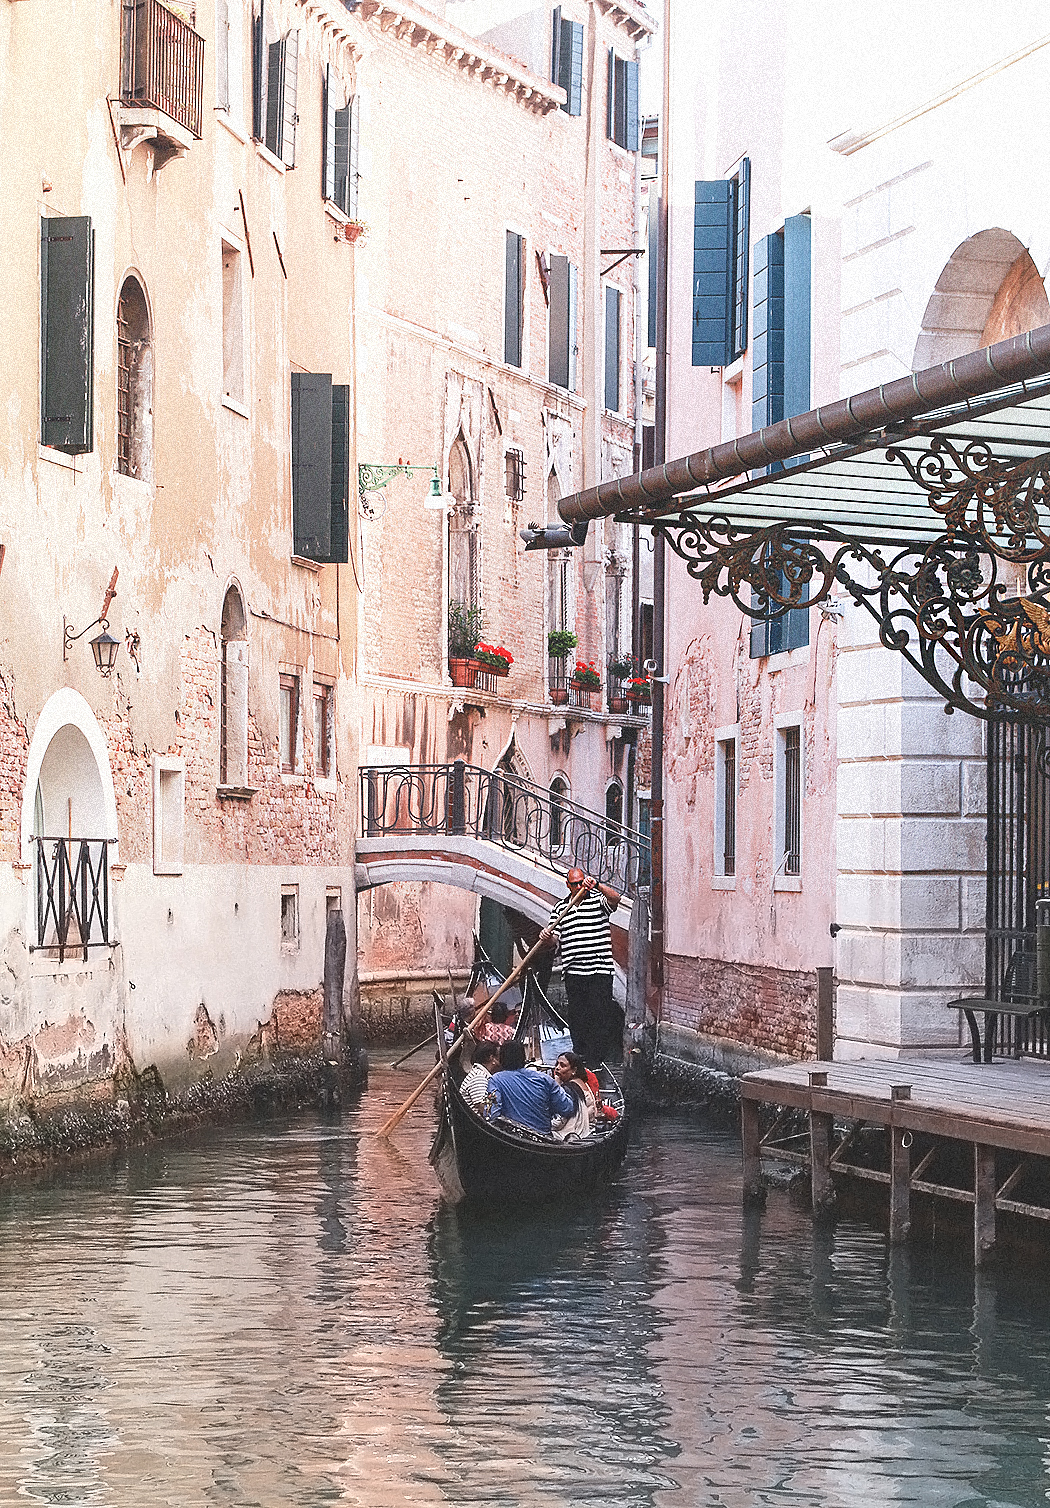 Venezia_travel_blogger_fashion_moscow_ritalifestyle_margarita_maslova_italy_trip_venice_photo_